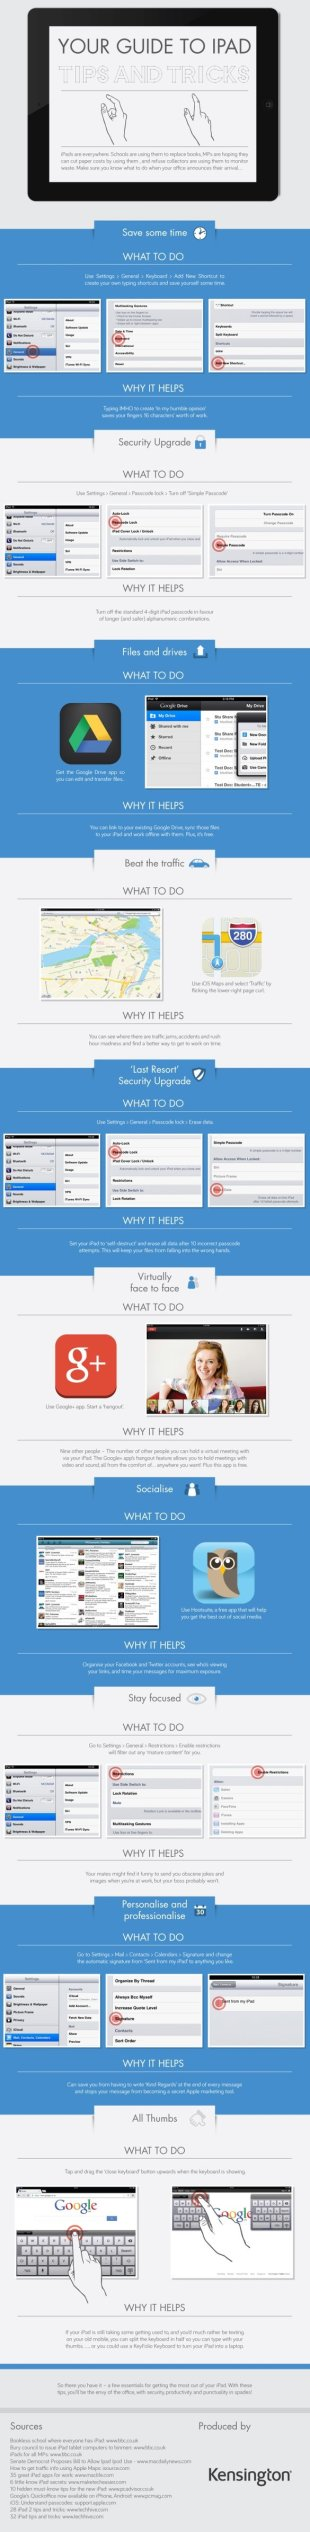 Your Guide to iPad Tips and Tricks Infographic image 80937315a27c b461 4509 9682 ba03bcdb4952